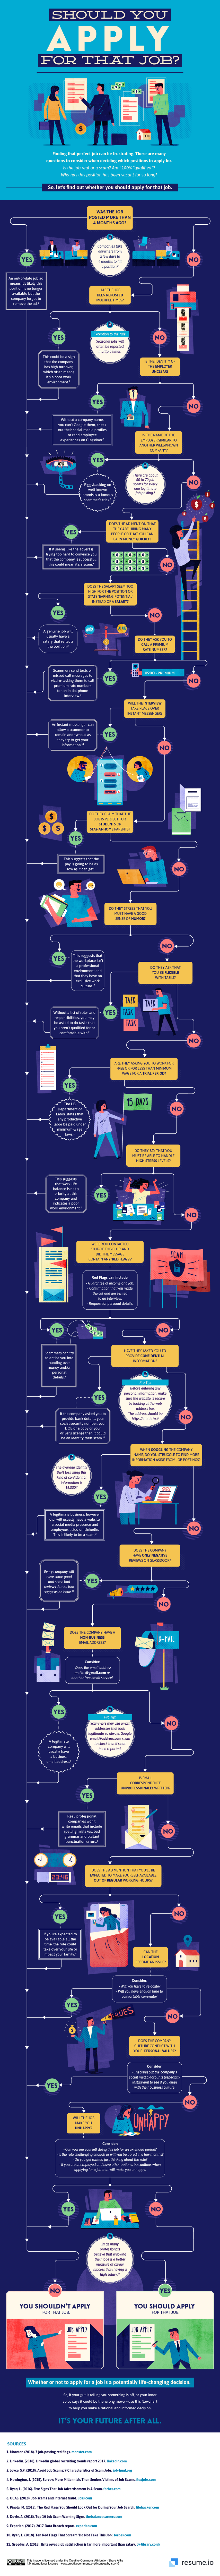 How to Tell Which Job Ads are Worth Applying - Infographic